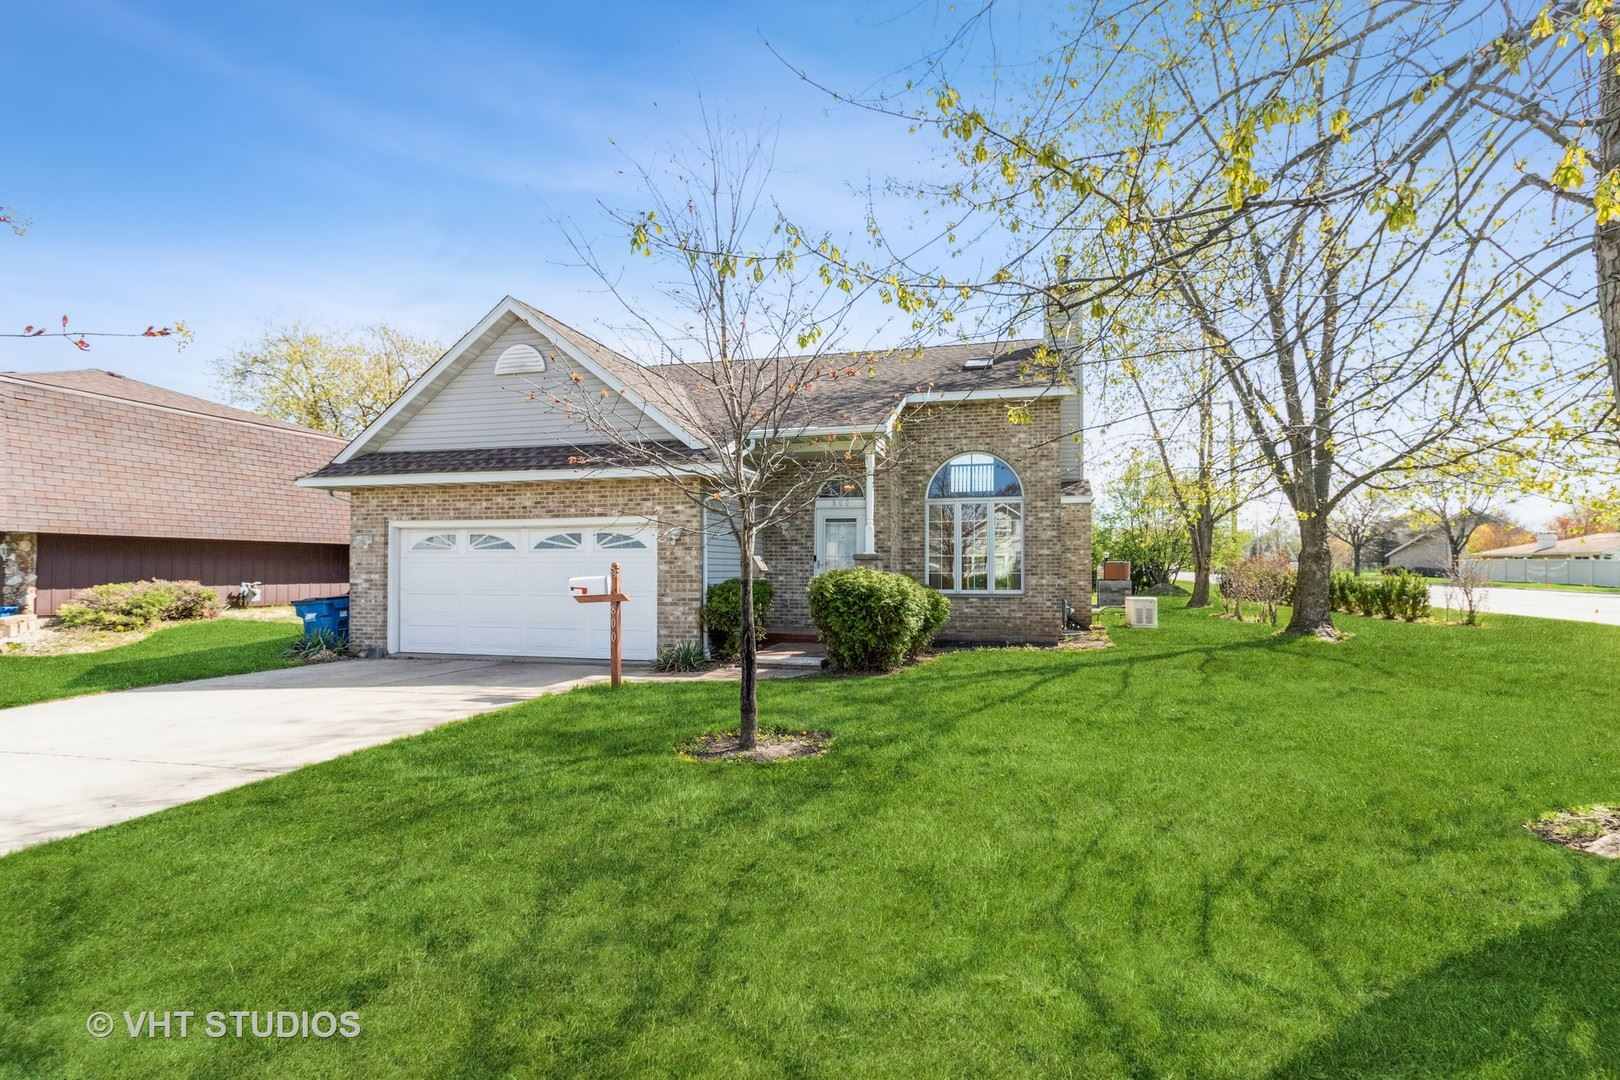 Photo of 800 Rooney Drive, Joliet, IL 60435 (MLS # 11038666)